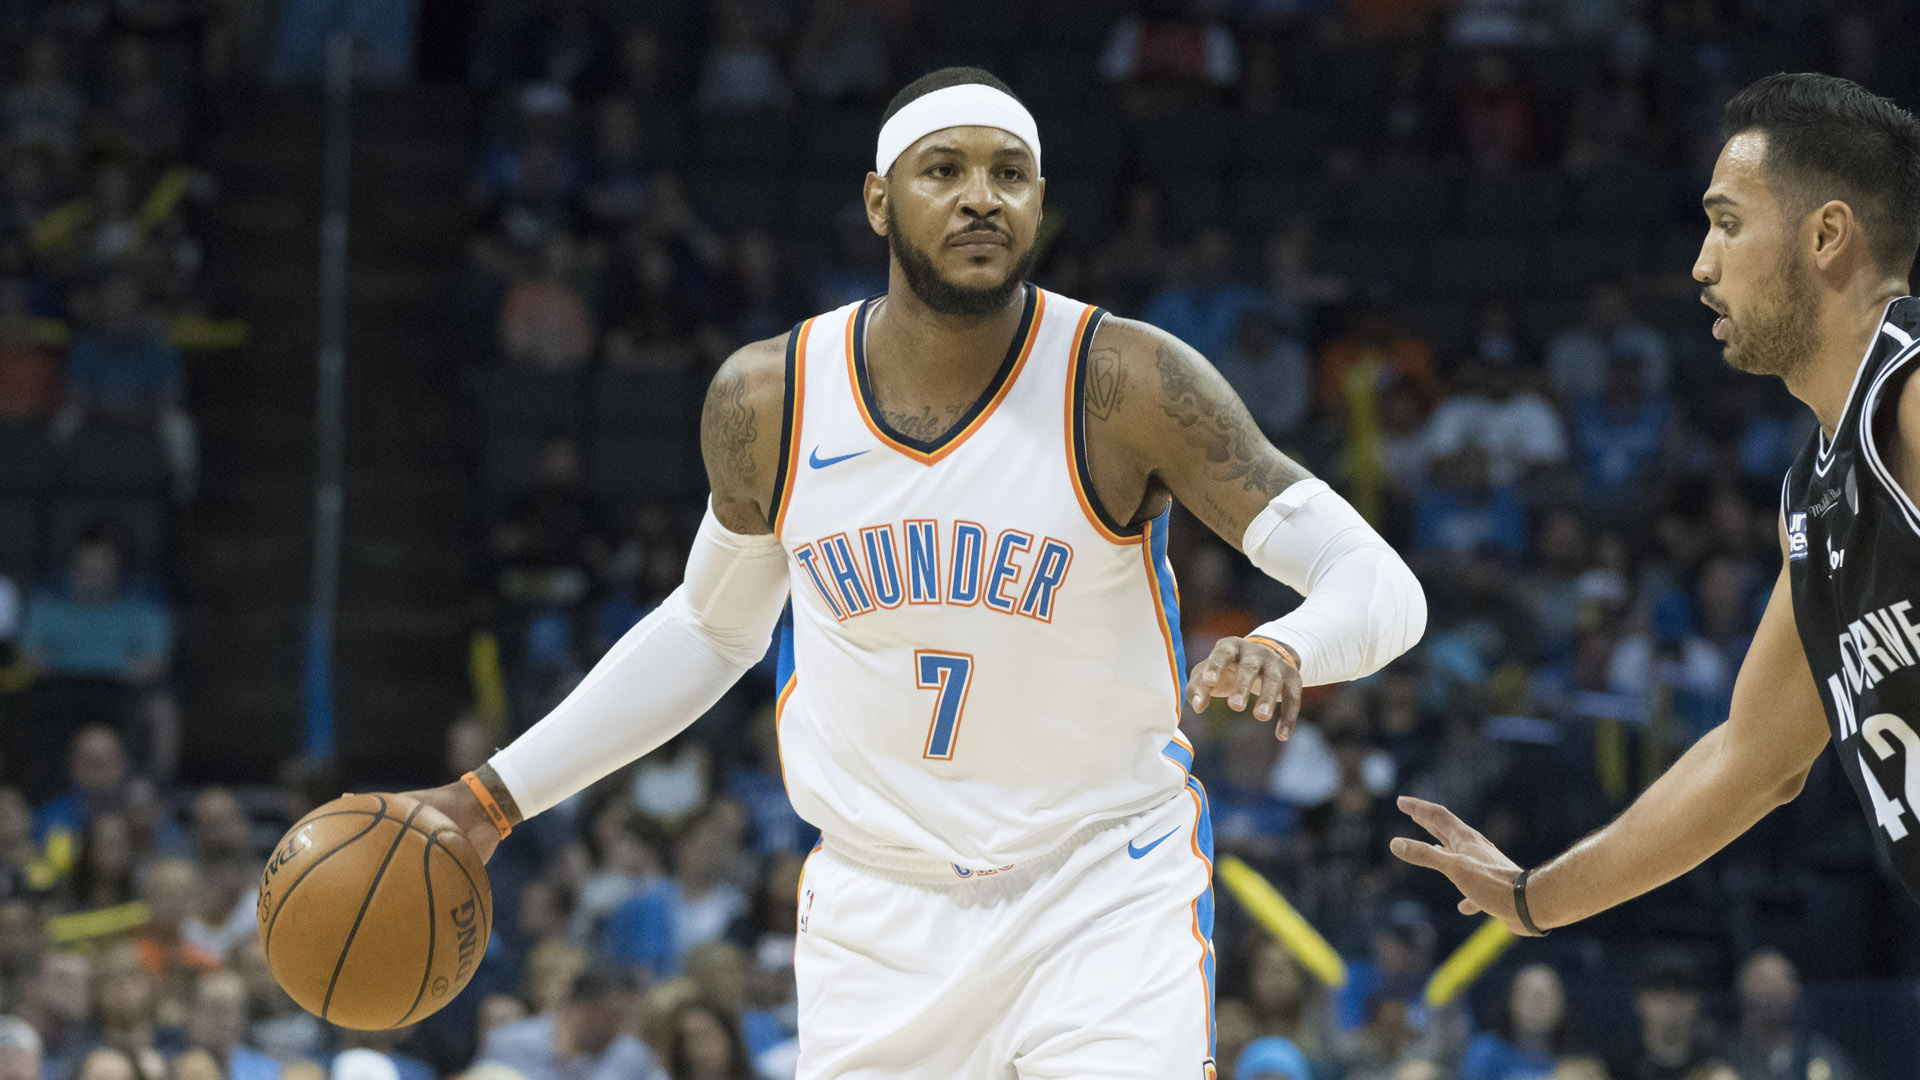 NBA free agency rumors: Erik Spoelstra wants Heat to sign Carmelo Anthony